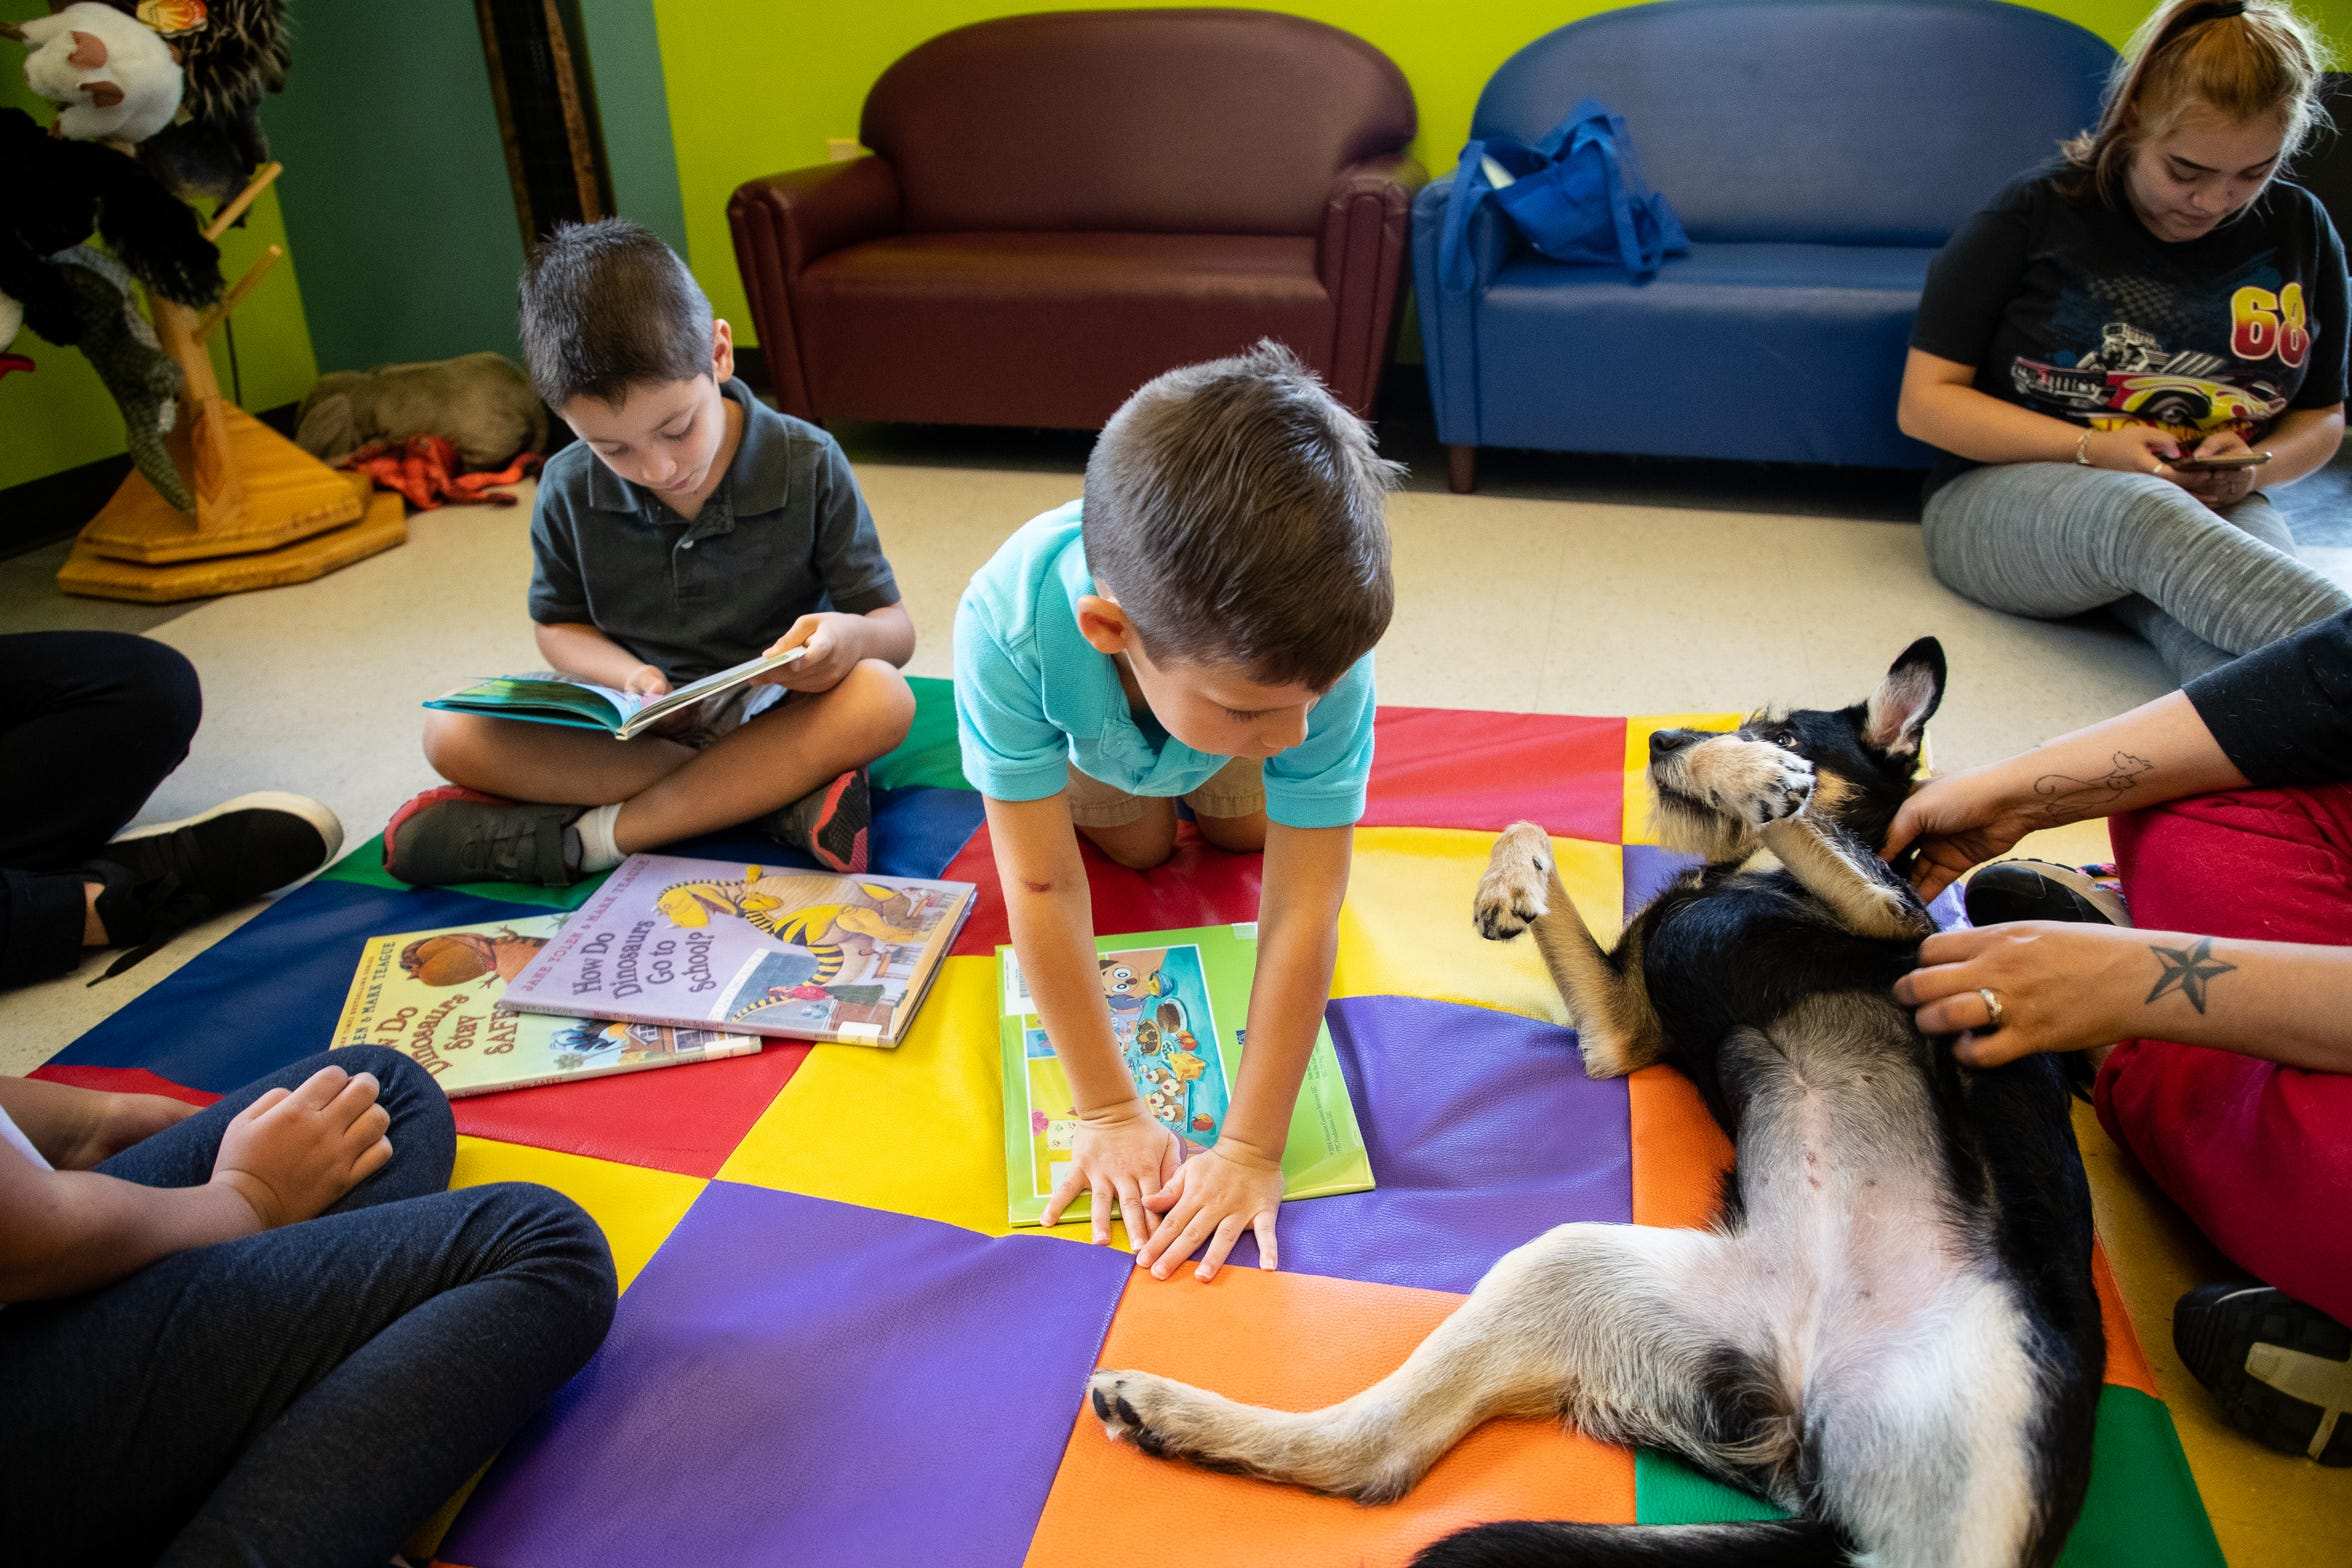 Bella the dog licks Josh Morgan as he flips through a children's book during a Read & Rollover event at Keach Family Library in Robstown on Wednesday, Nov. 7, 2018.